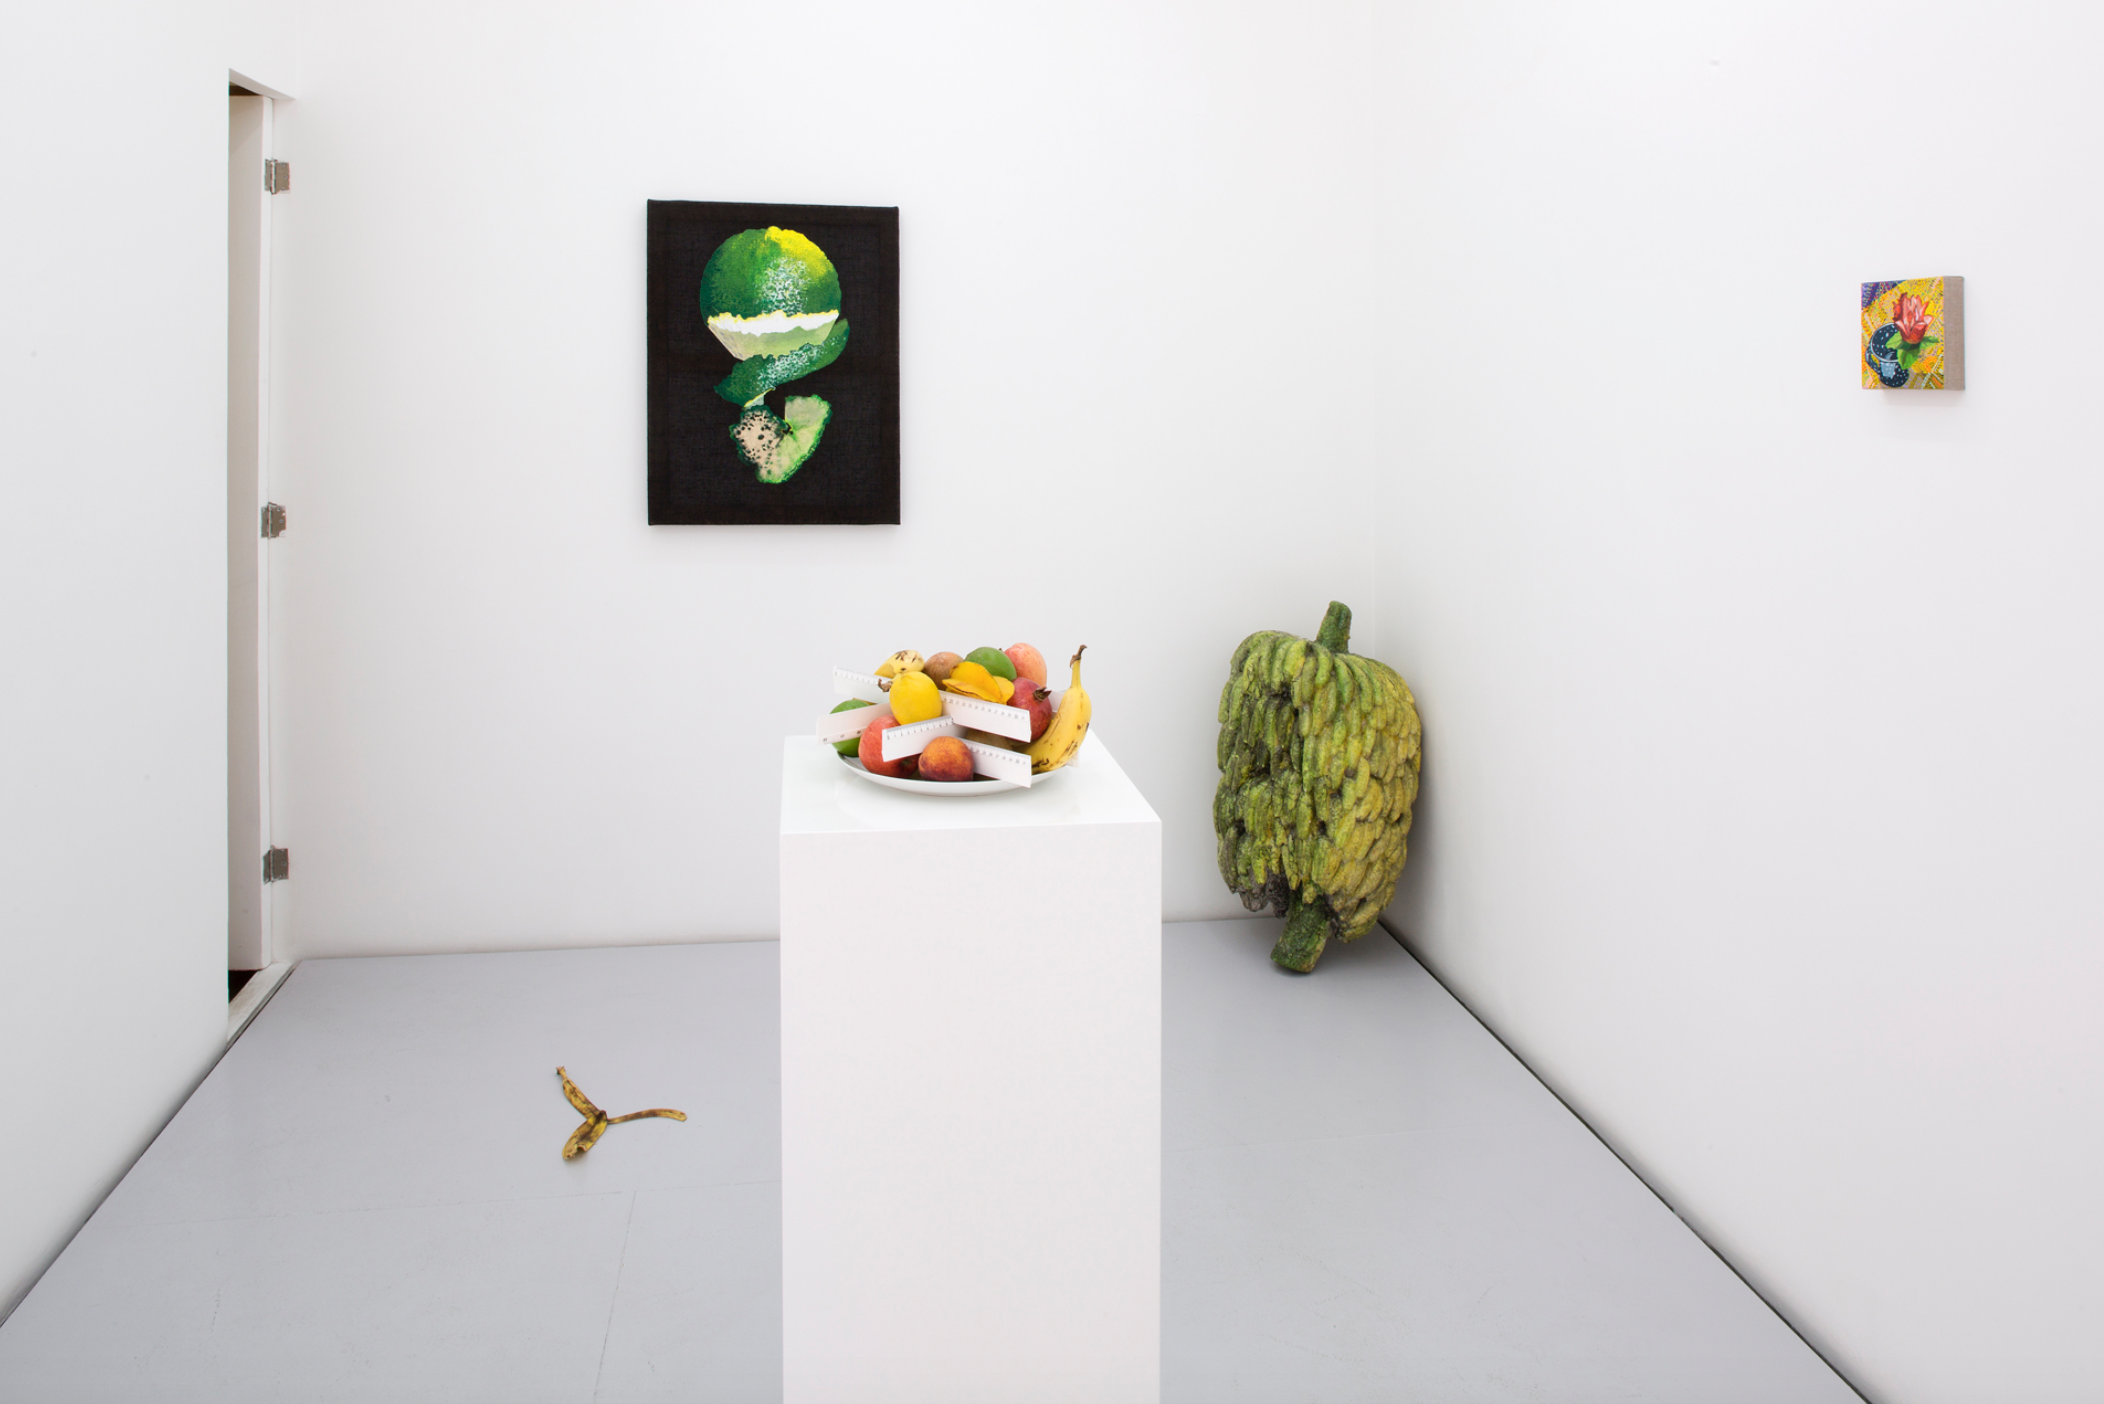 A group show at Lulu, photo thanks to Lulu.